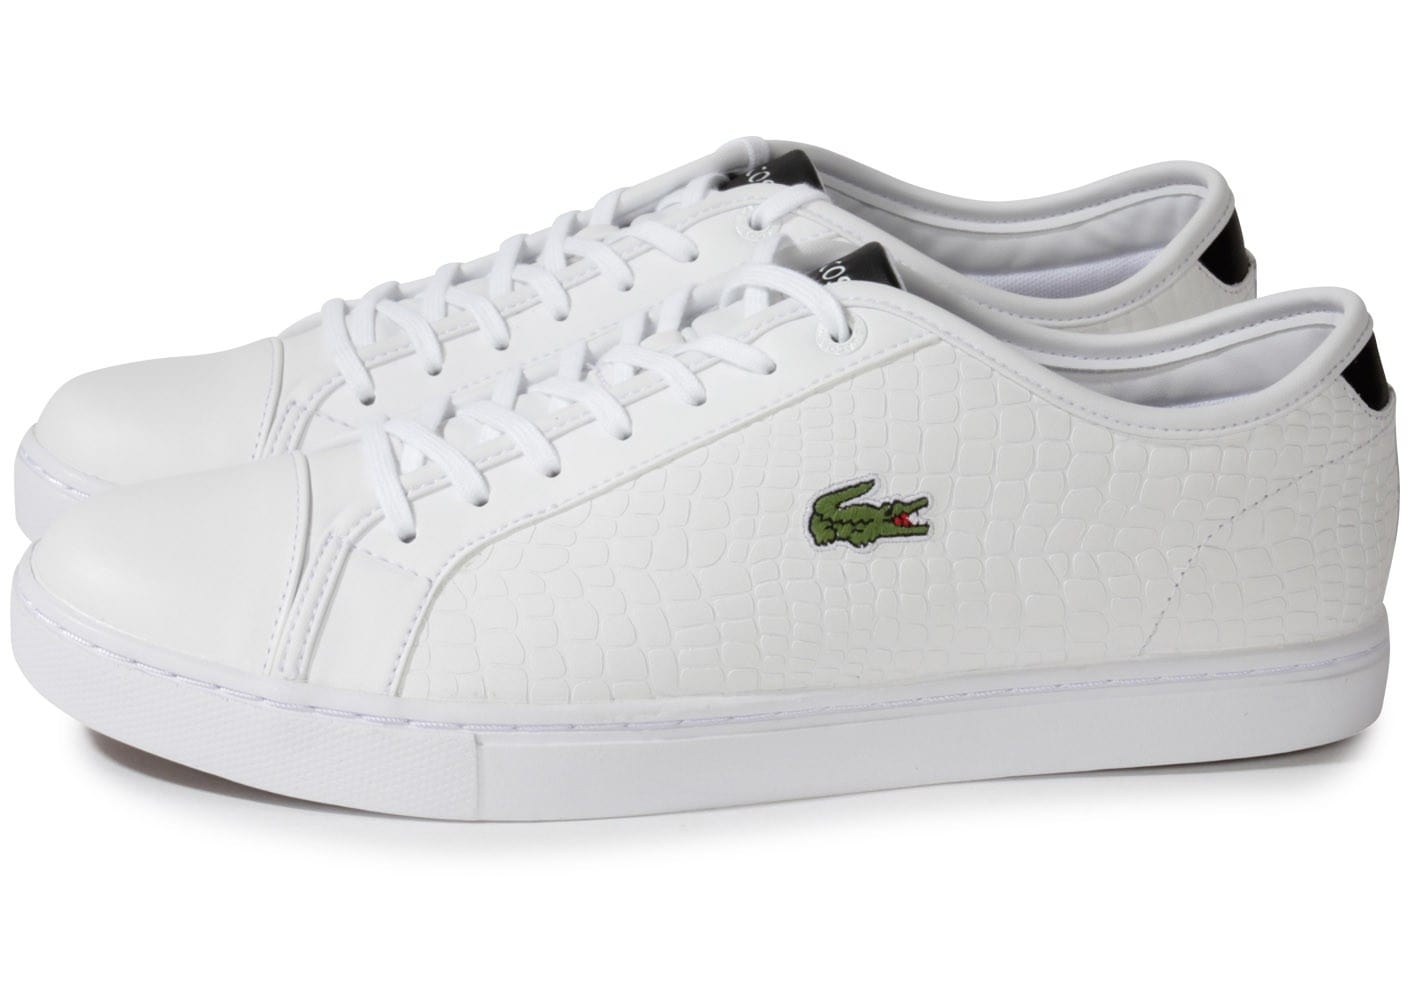 Chaussures Lacoste blanches homme GW0Xk9